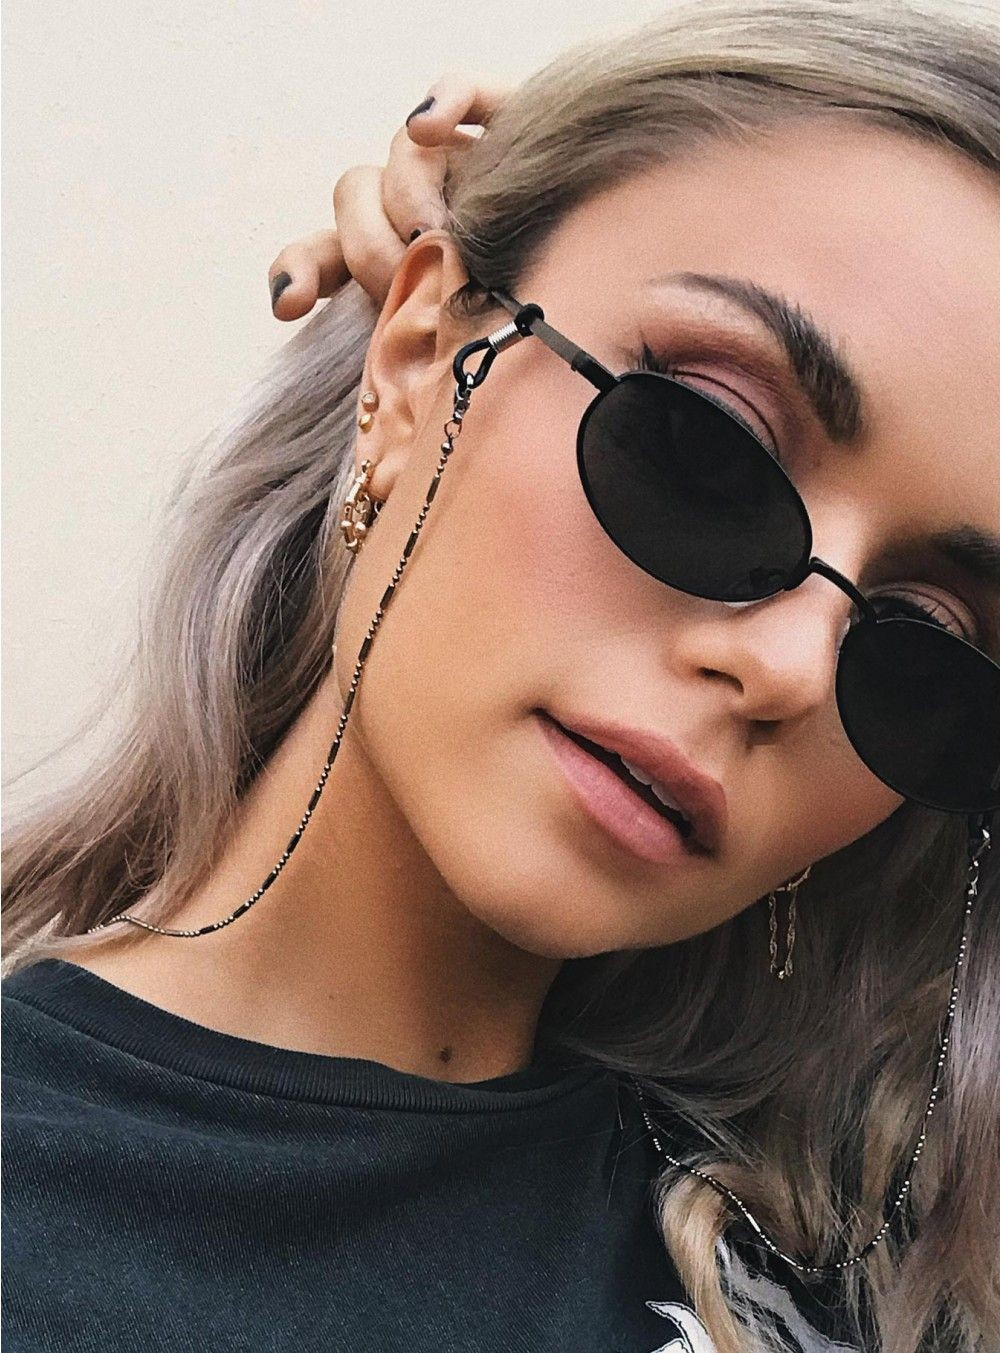 Lanyard For Glasses Bead Glasses Chain Fashion Glasses Strap Sunglasses Cords Casual Glasses Accessories DJ-162